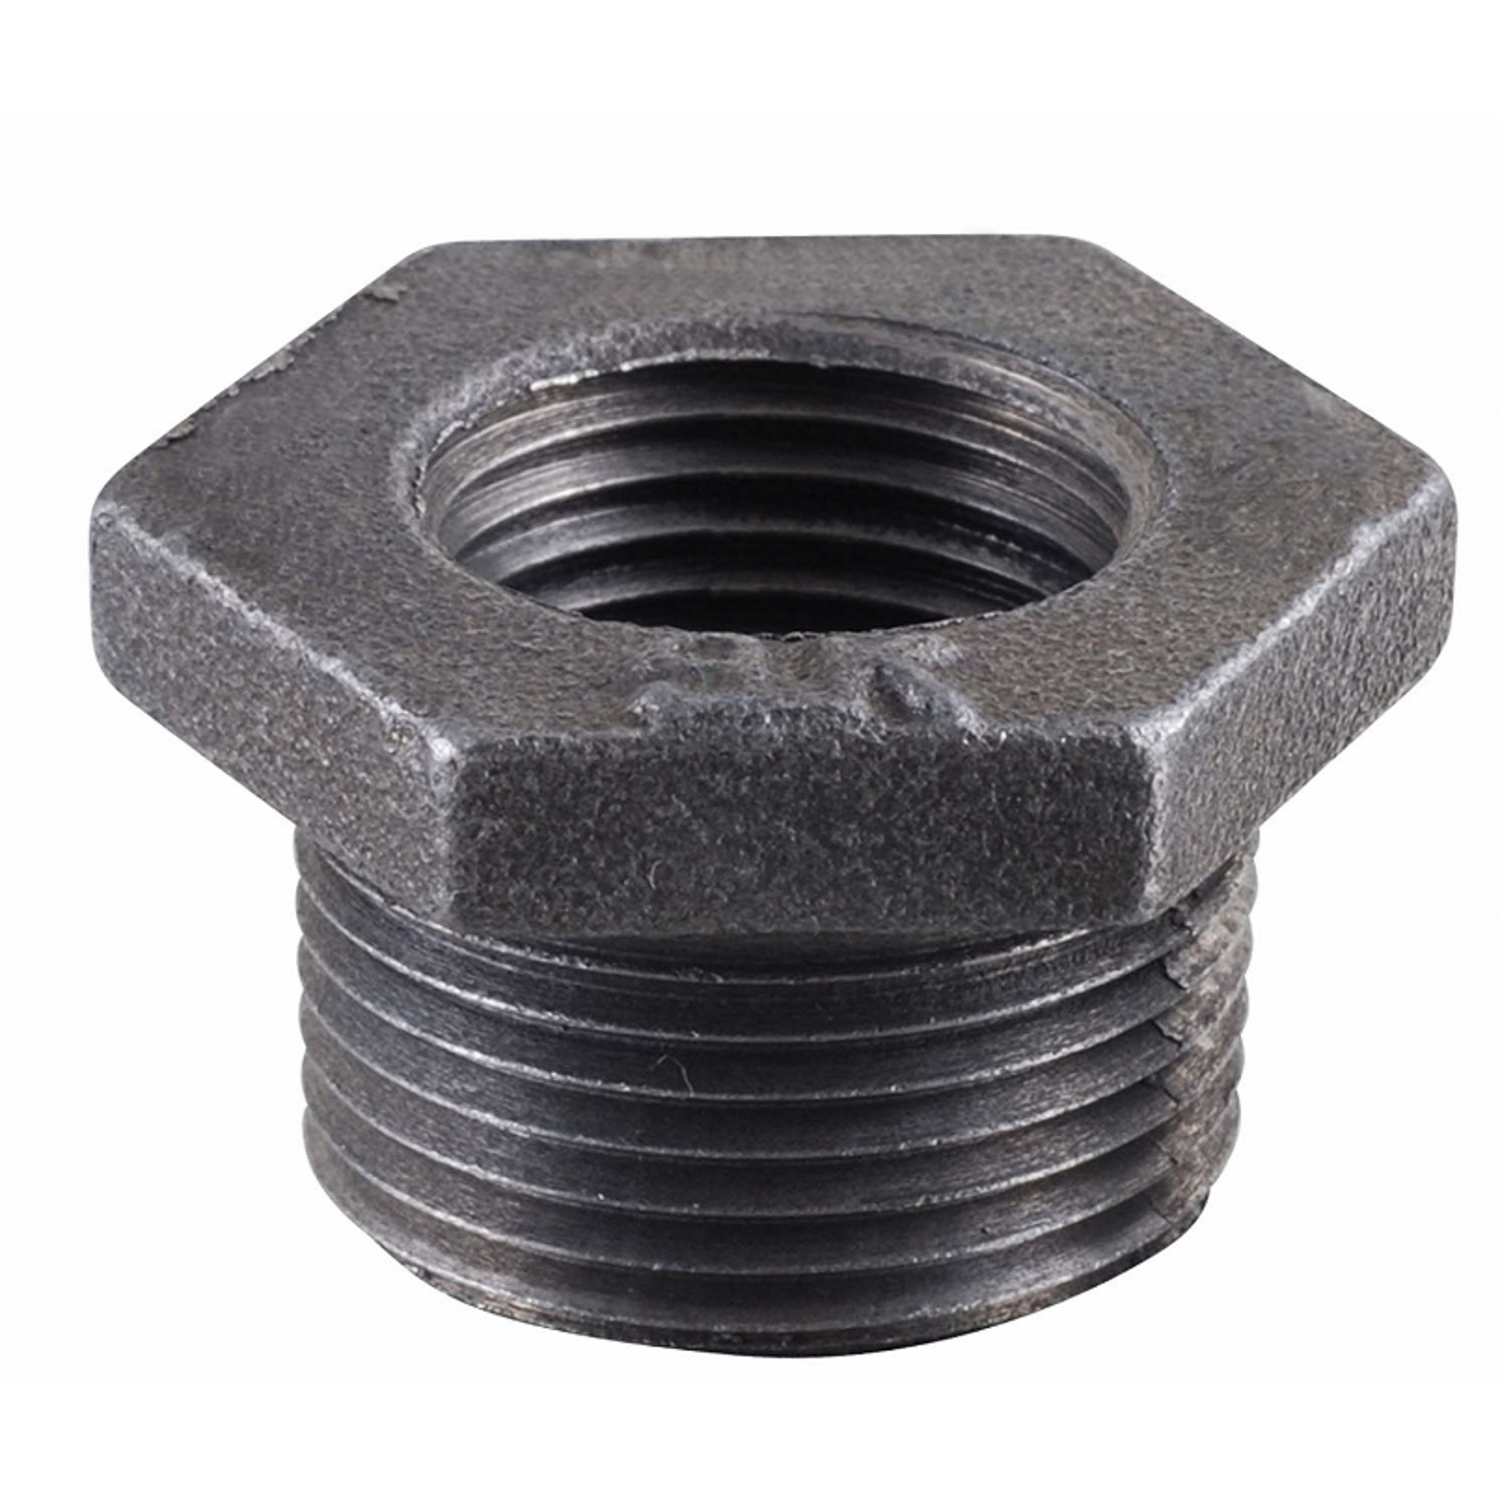 B & K  3/4 in. MPT   x 1/2 in. Dia. FPT  Black  Malleable Iron  Hex Bushing